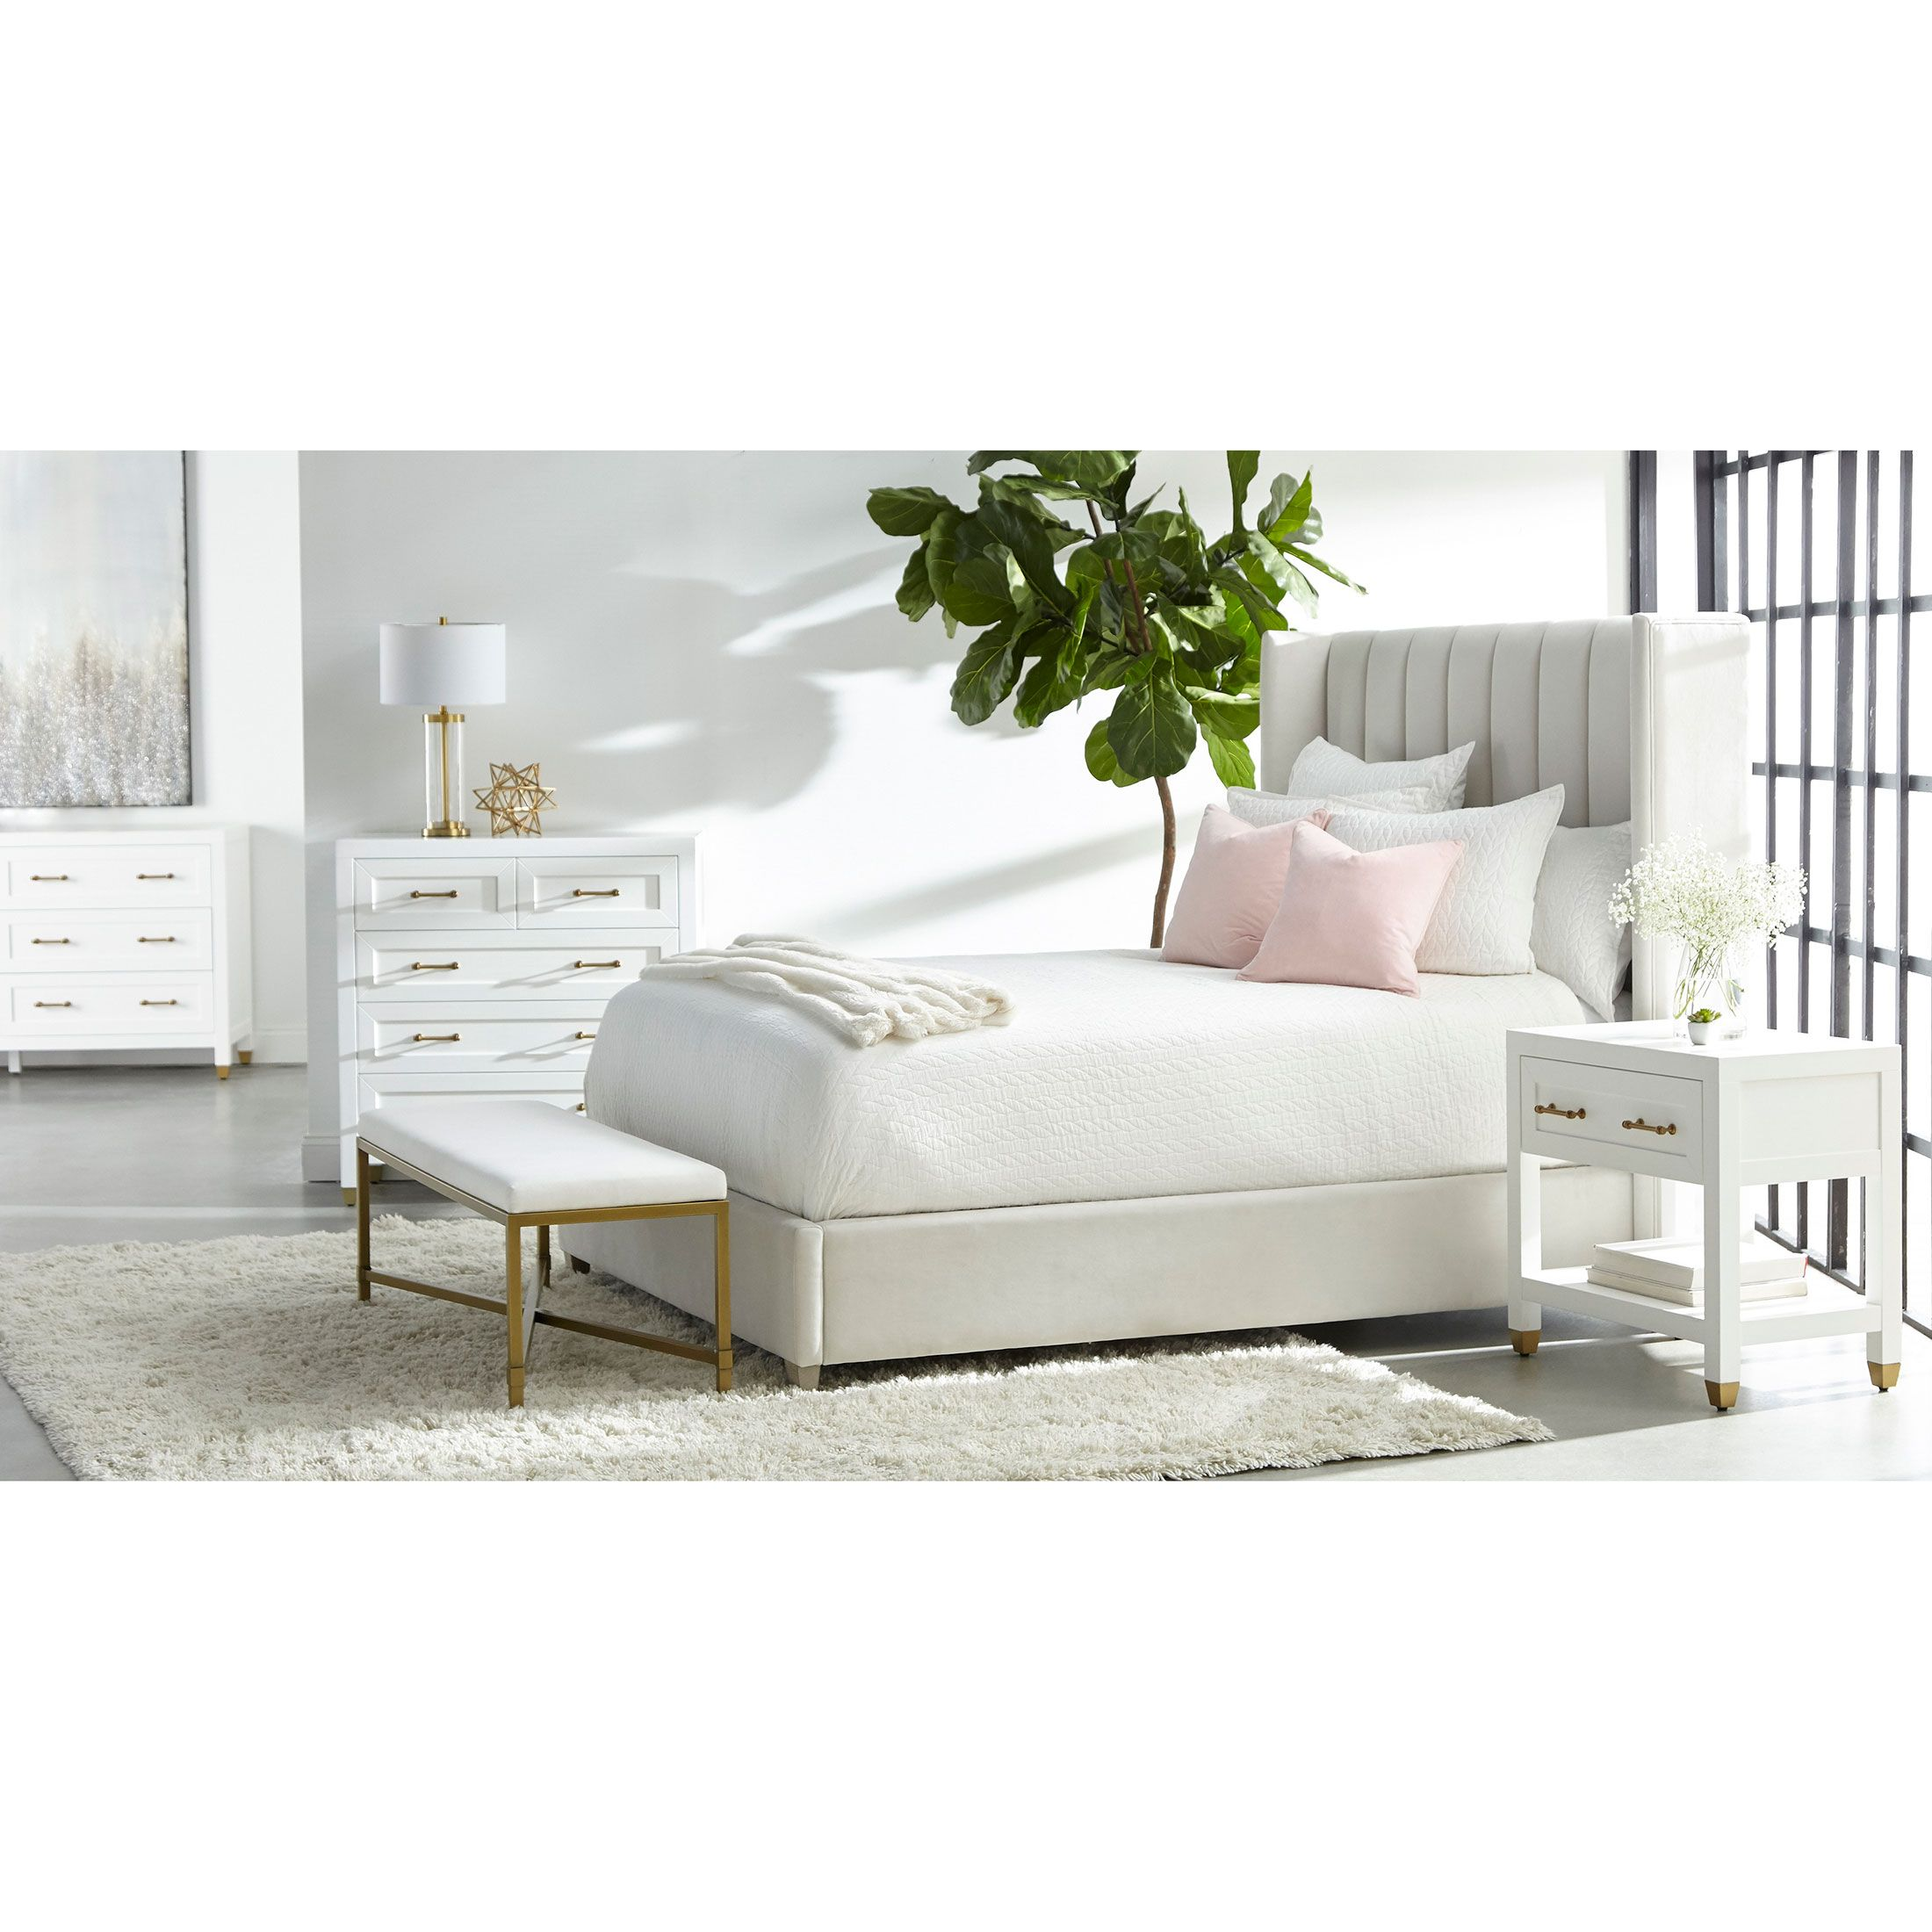 Stacy Modern Classic 1 Drawer Brass Accent White Nightstand In 2021 Winged Bed Cal King Bedding Upholster